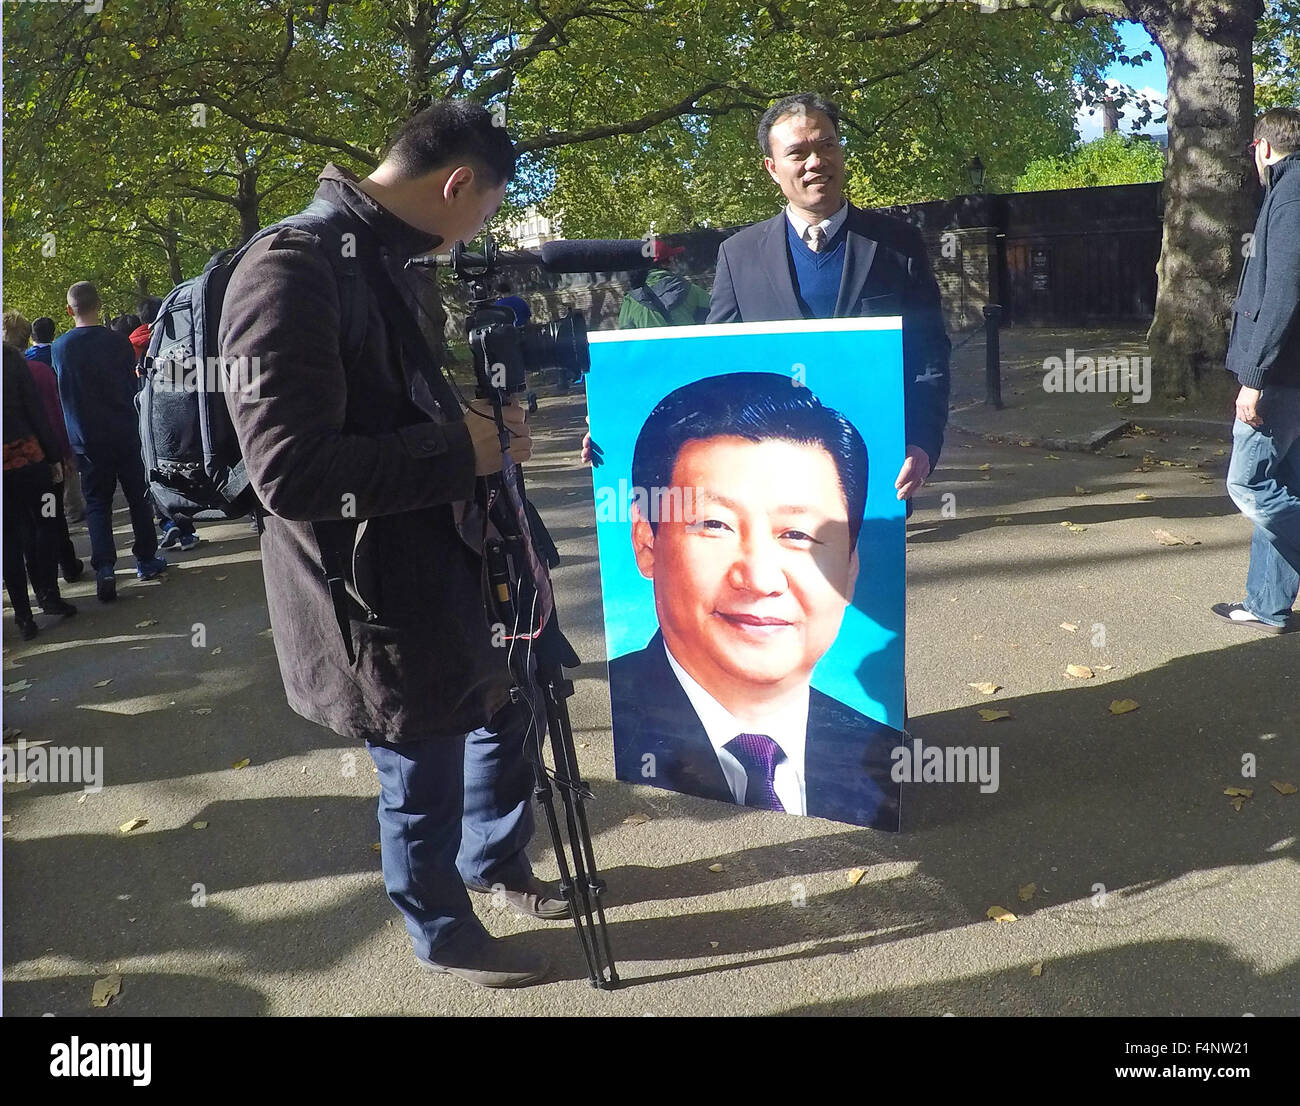 Pro Chinese supporter lines the Mall with a poster of the  Chinese President Xi Jinping, who has meeting with the - Stock Image